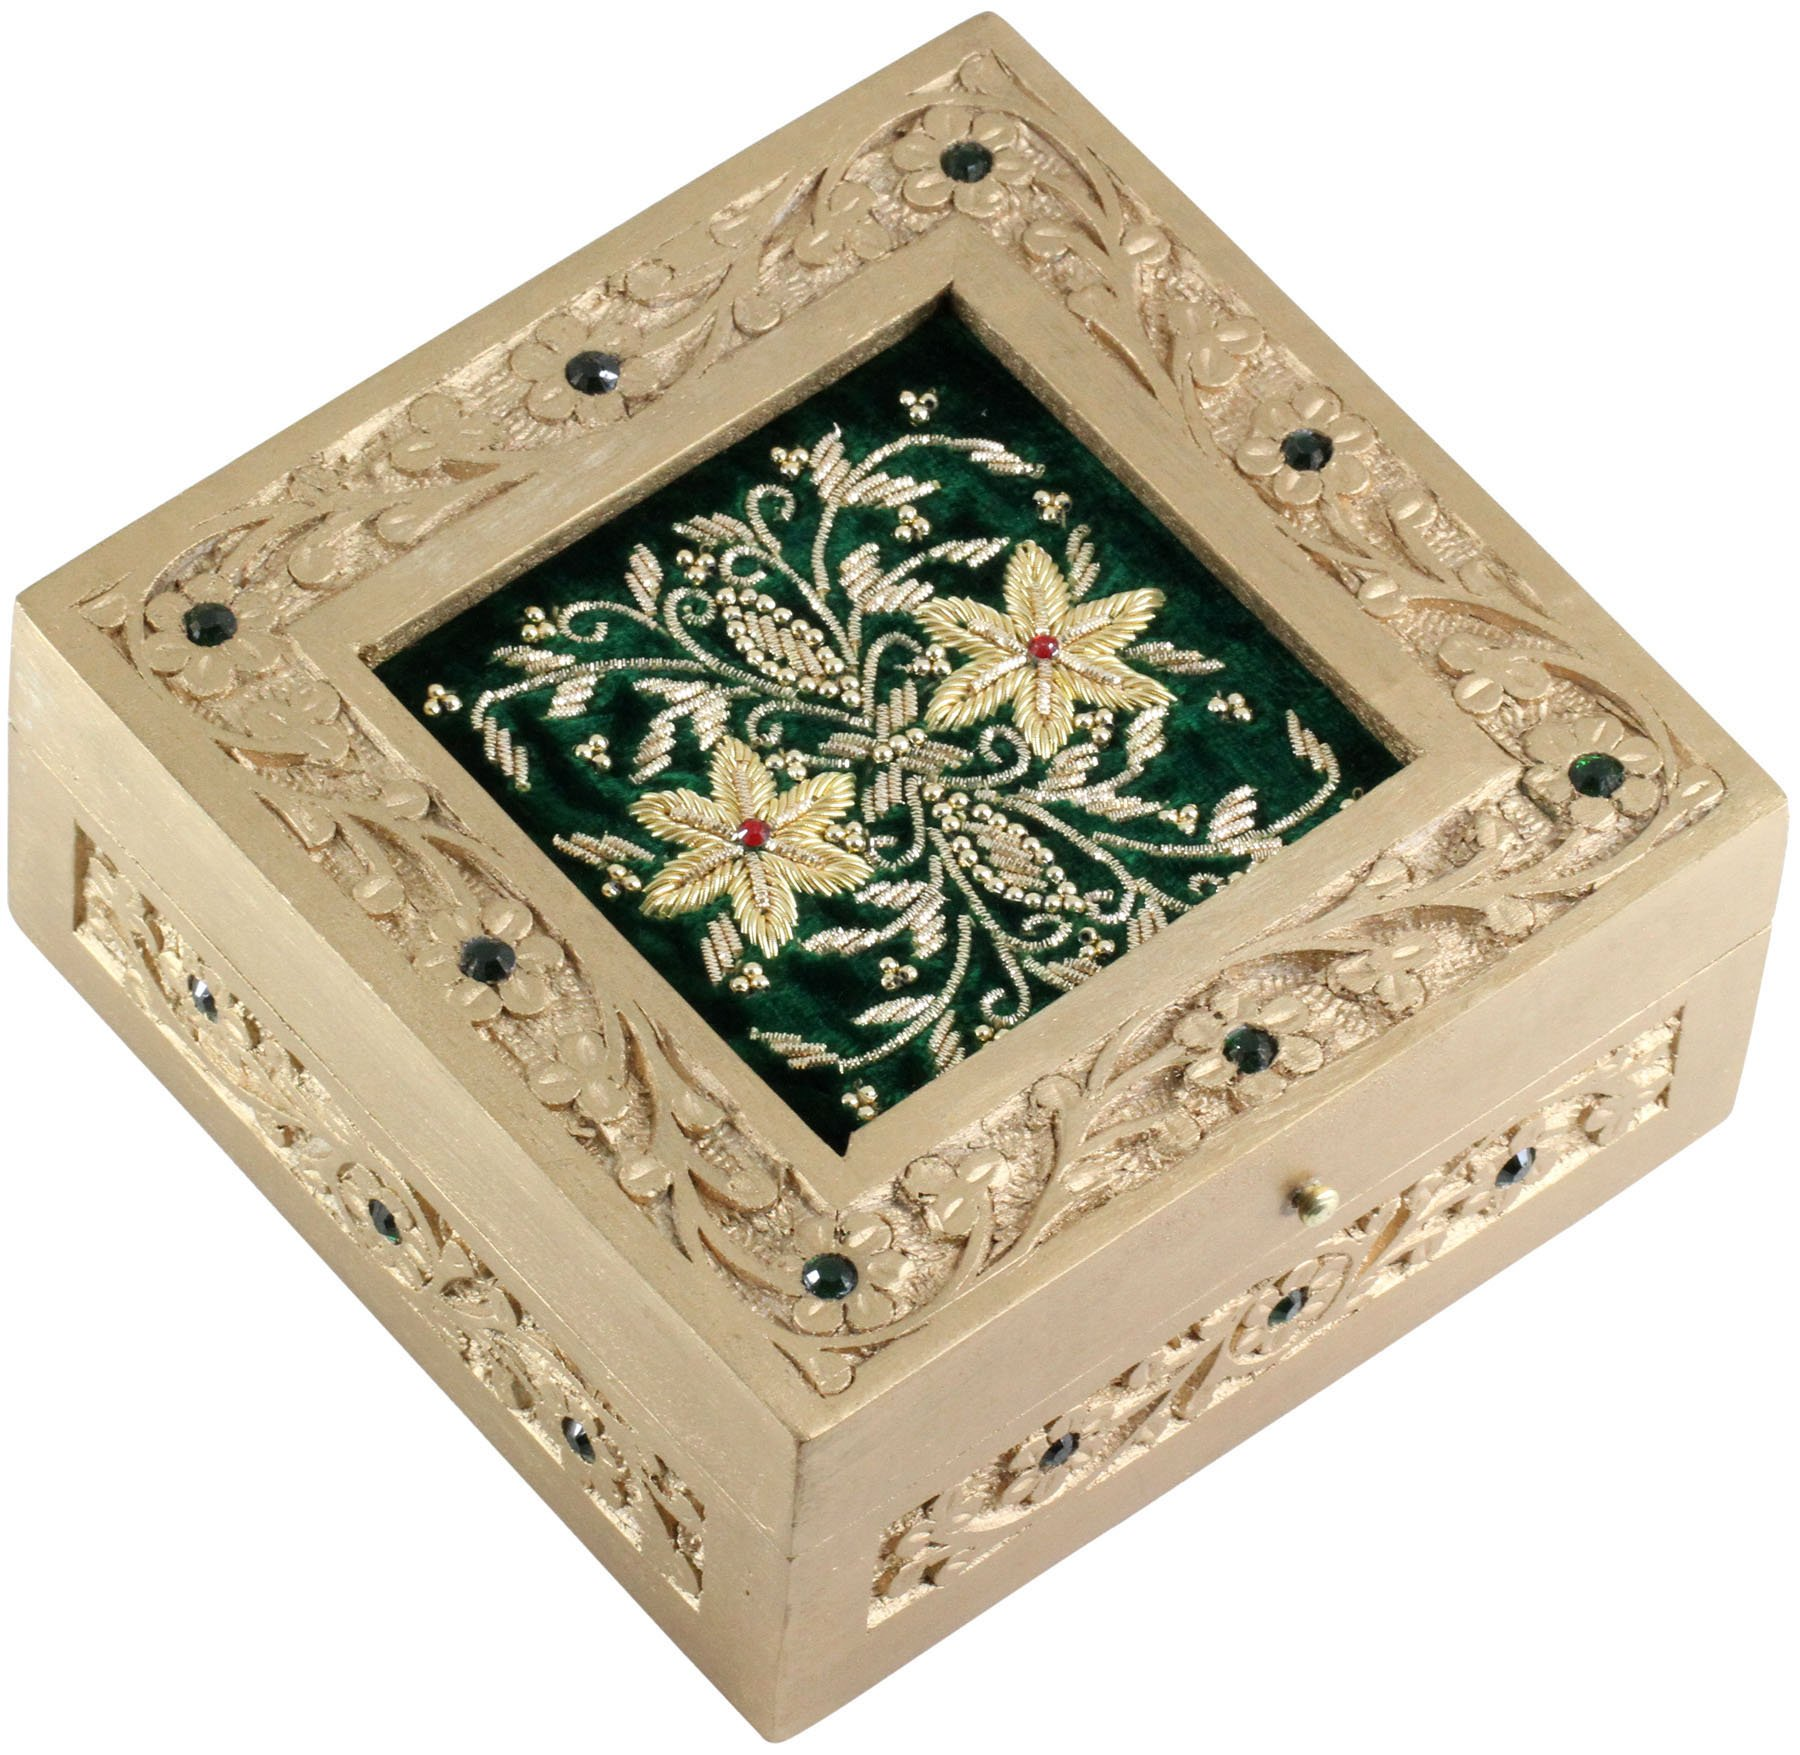 SouvNear 6 Inch Green Jewelry Box Zari Decorative Keepsake - Handmade Wood Box - Gift for Her